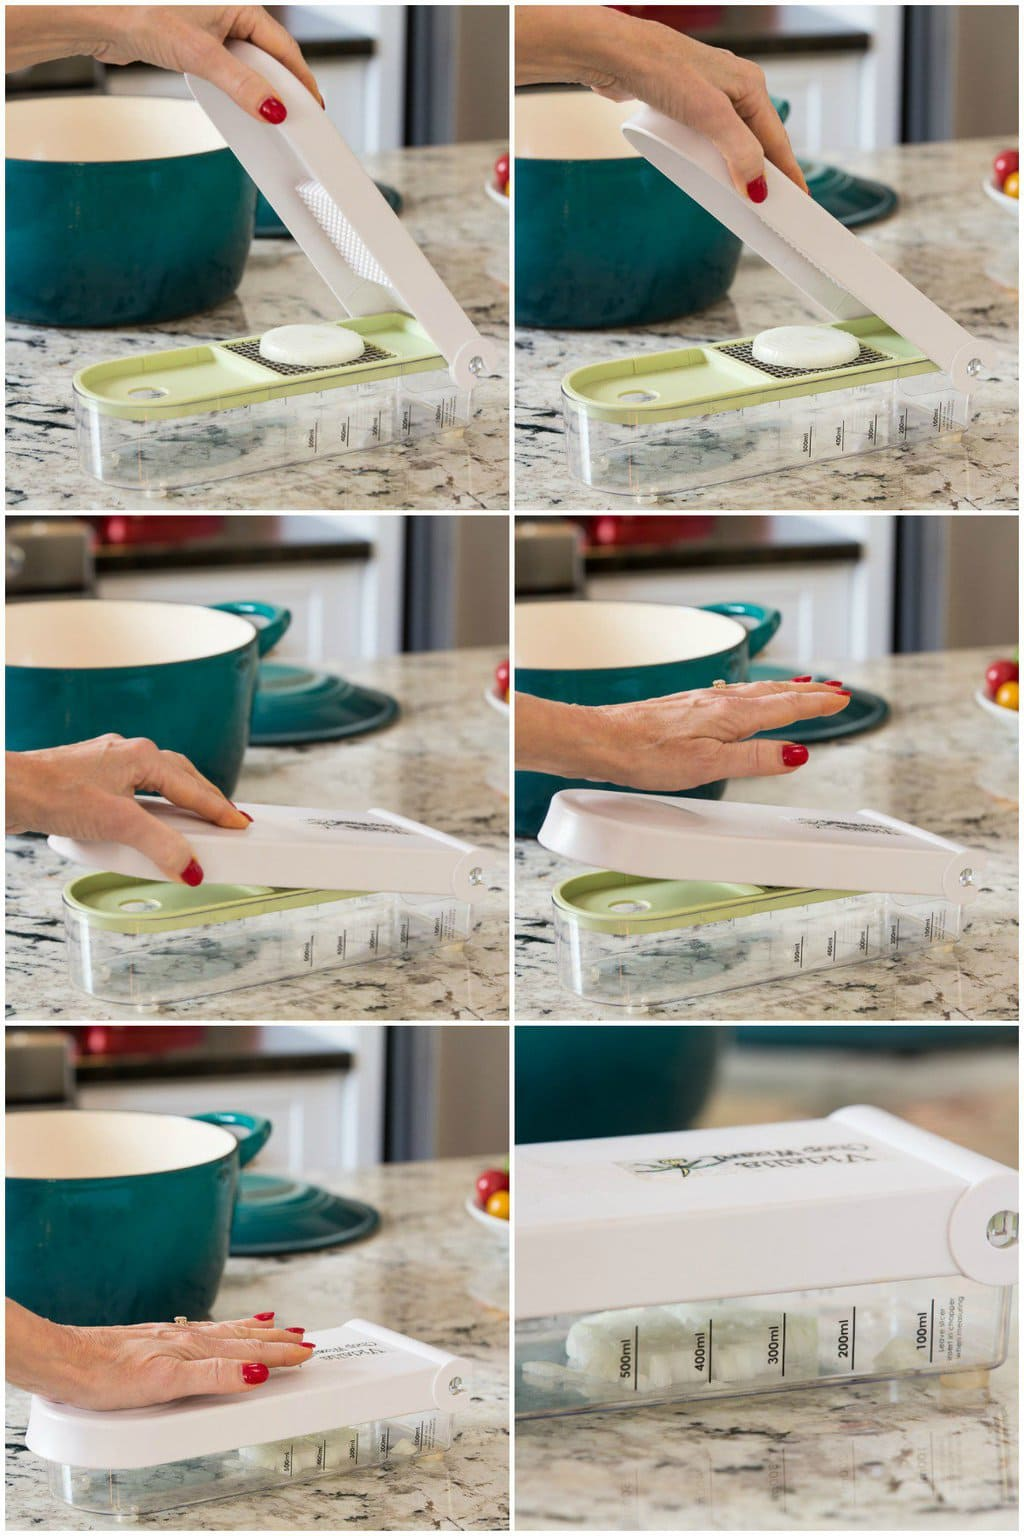 Photo collage of how to chop veggies and other food items with a Vidalia Chopper.